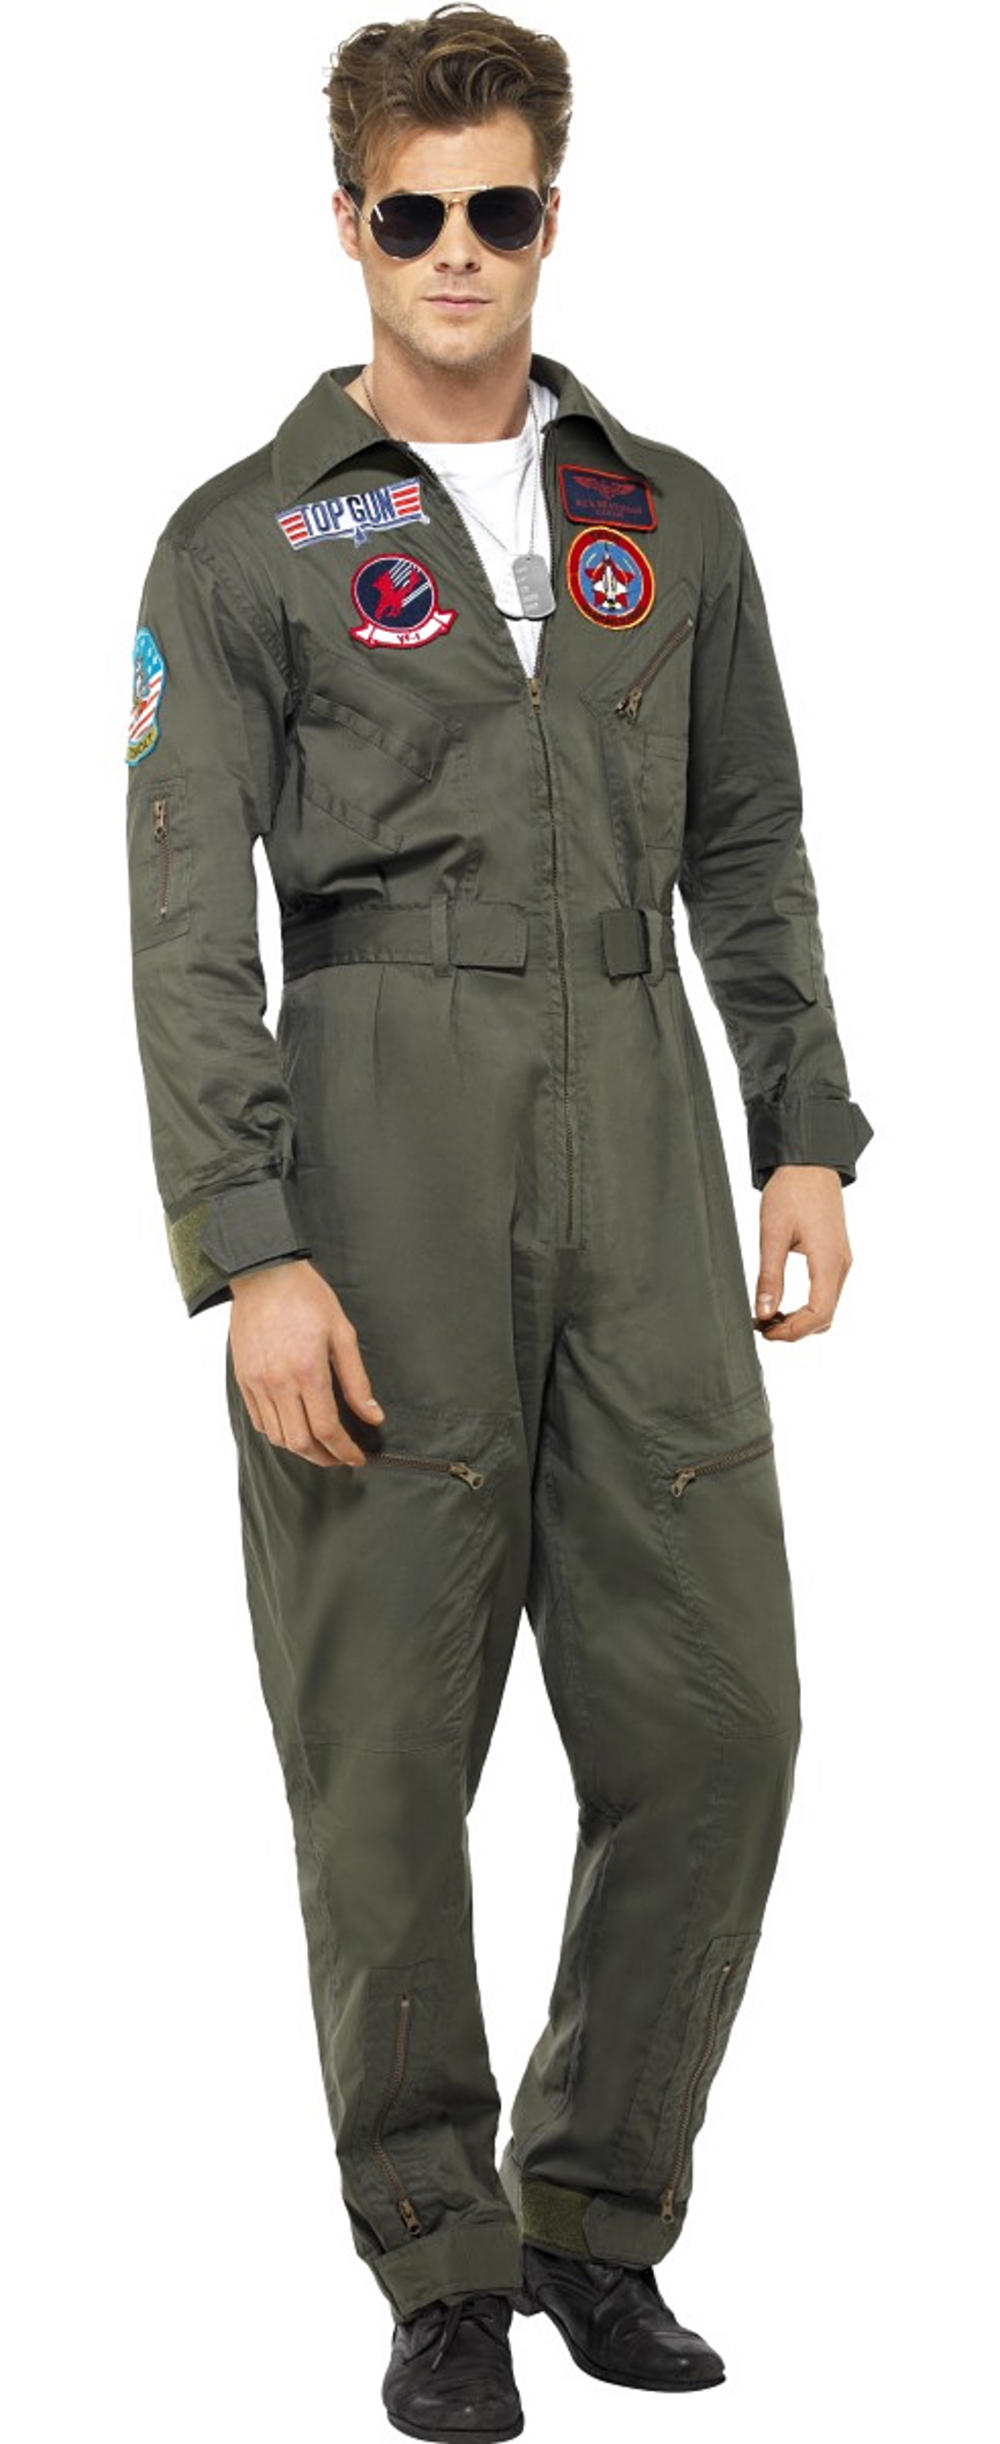 Top Gun Deluxe Male Costume Stag Party Costumes Mega